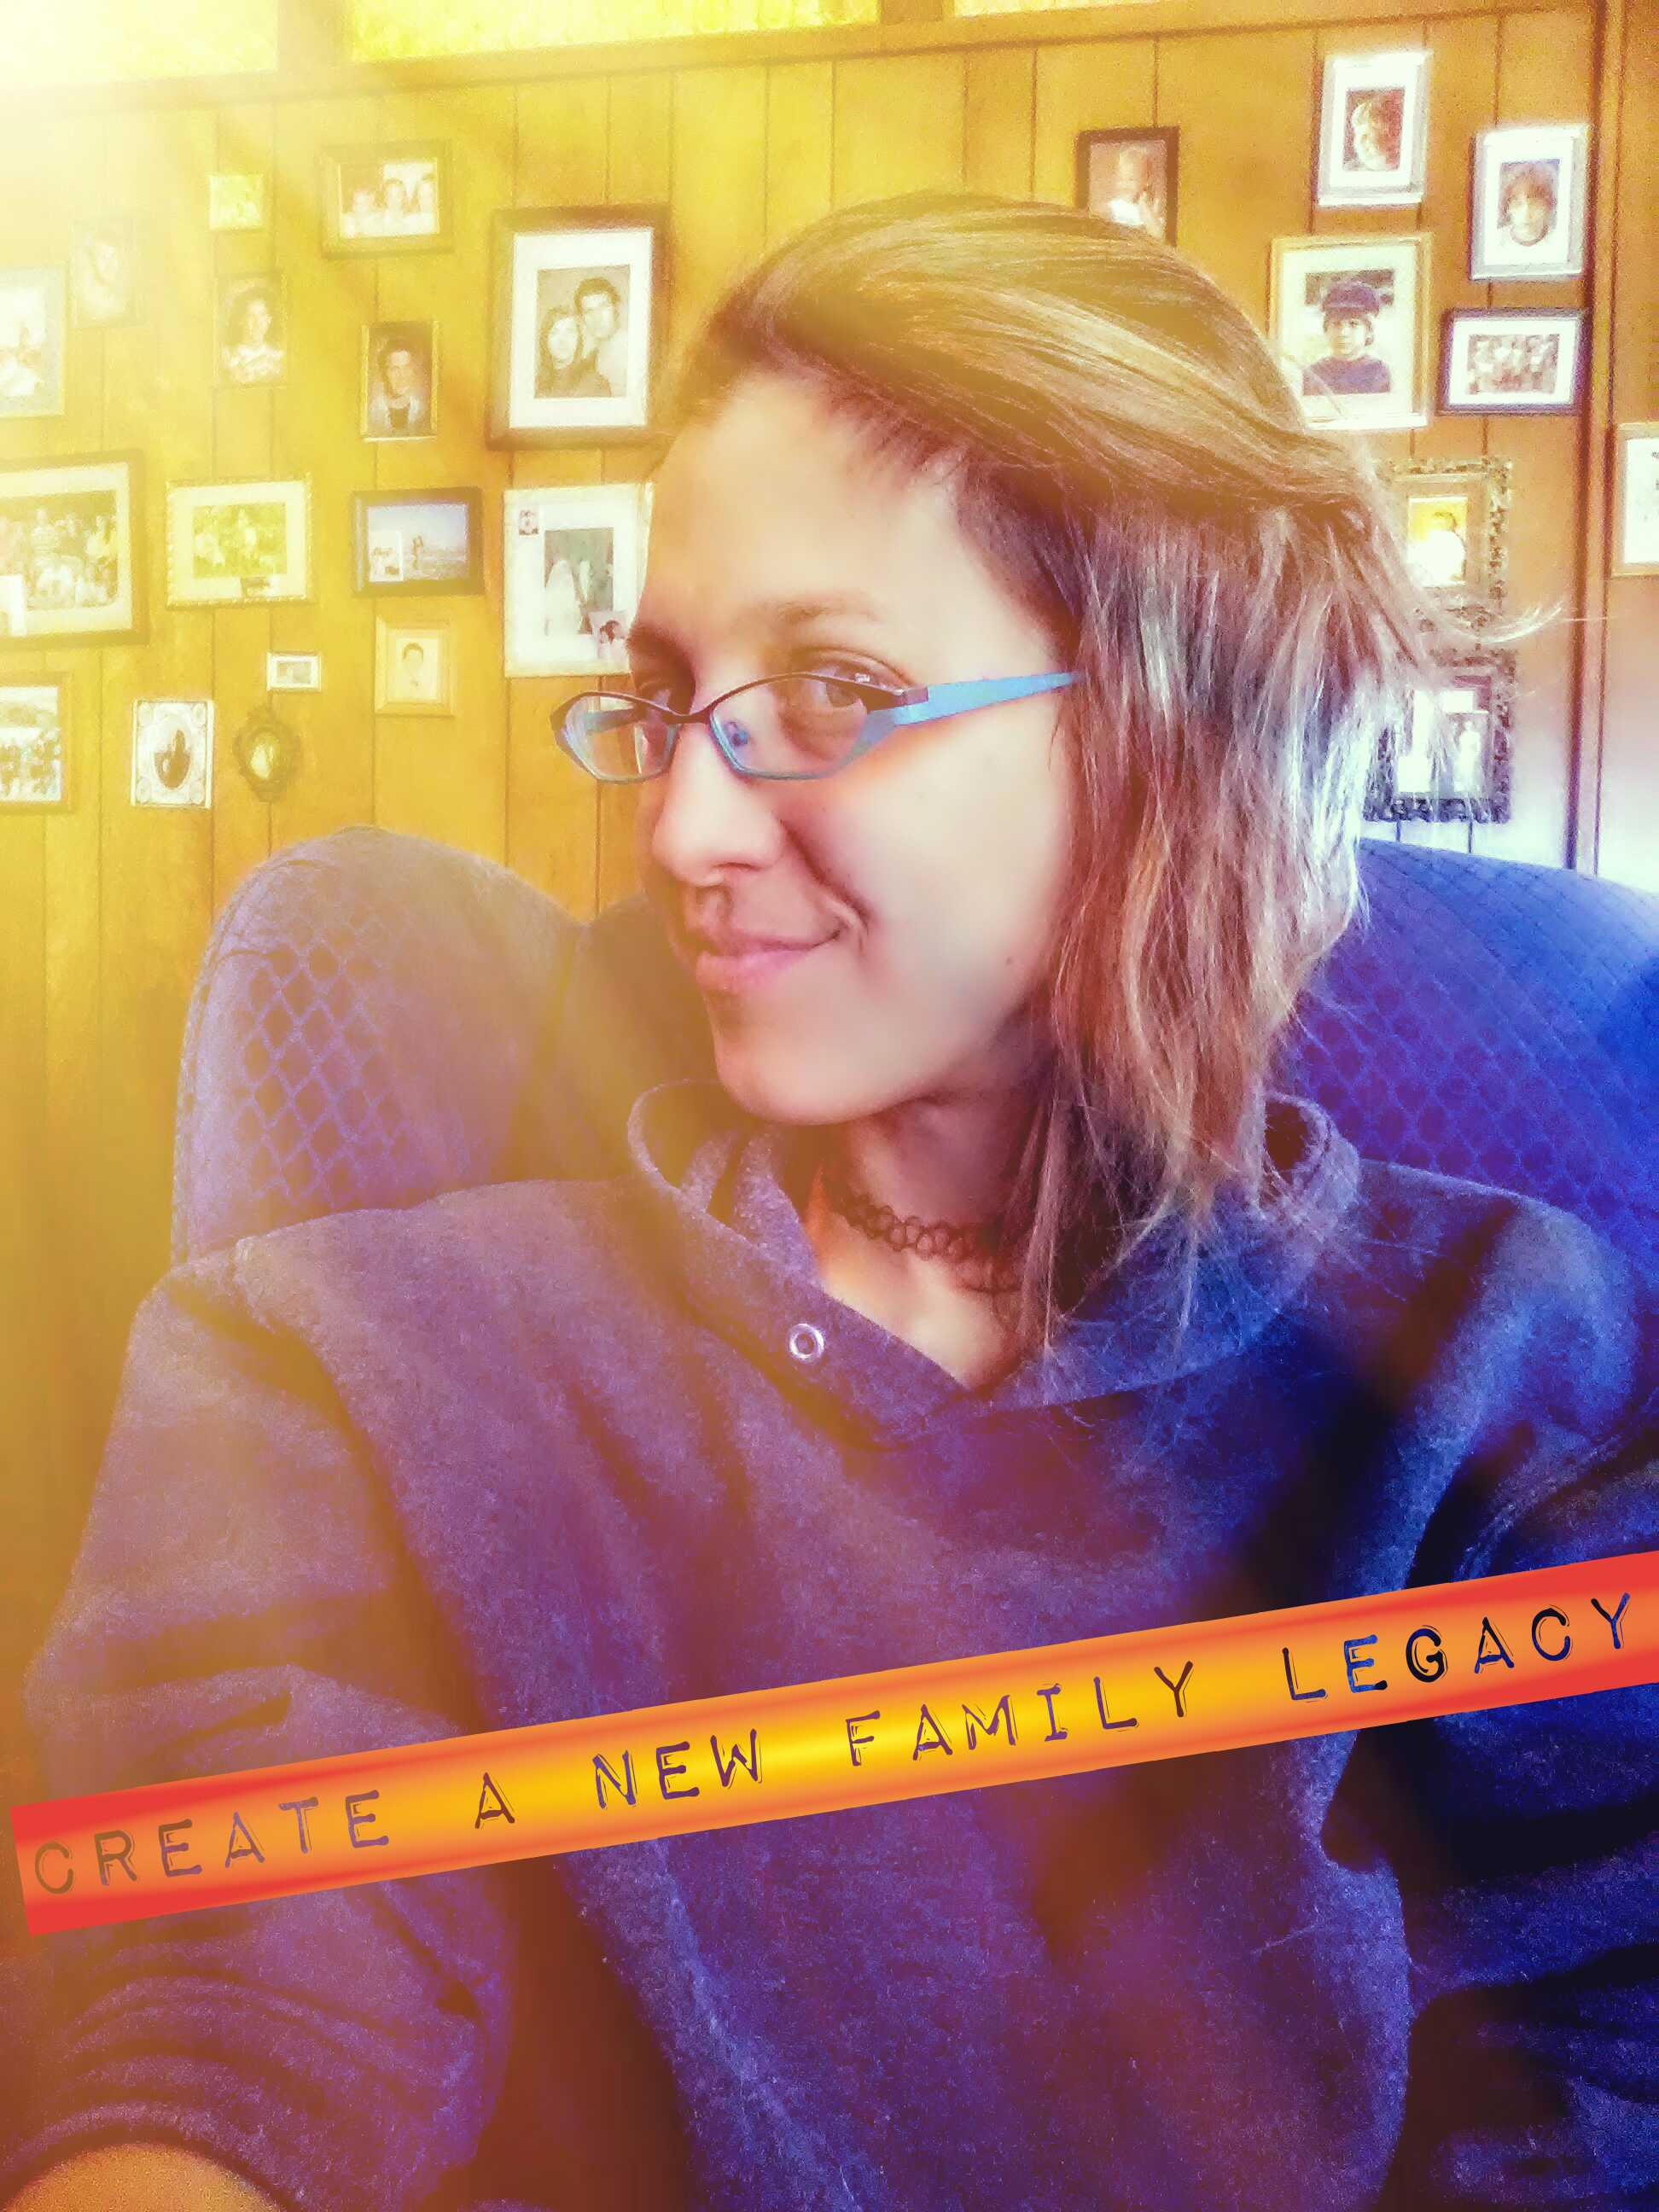 Heal and Be: Create A New Family Legacy